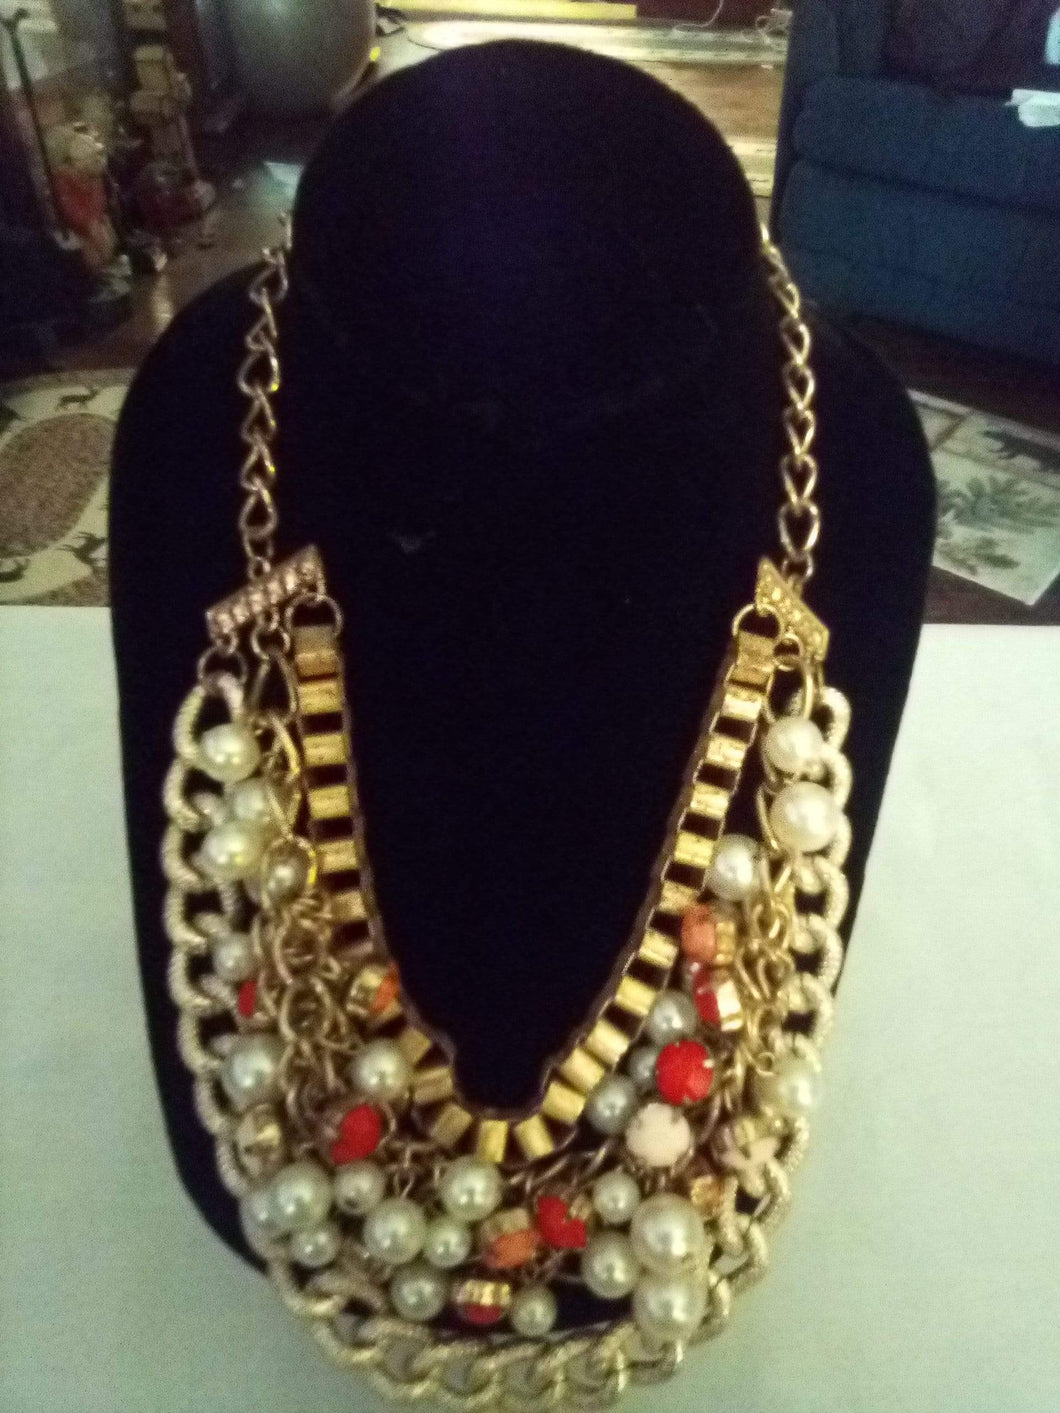 Elegant and nice multi tier necklace - B&P'sringsnthings